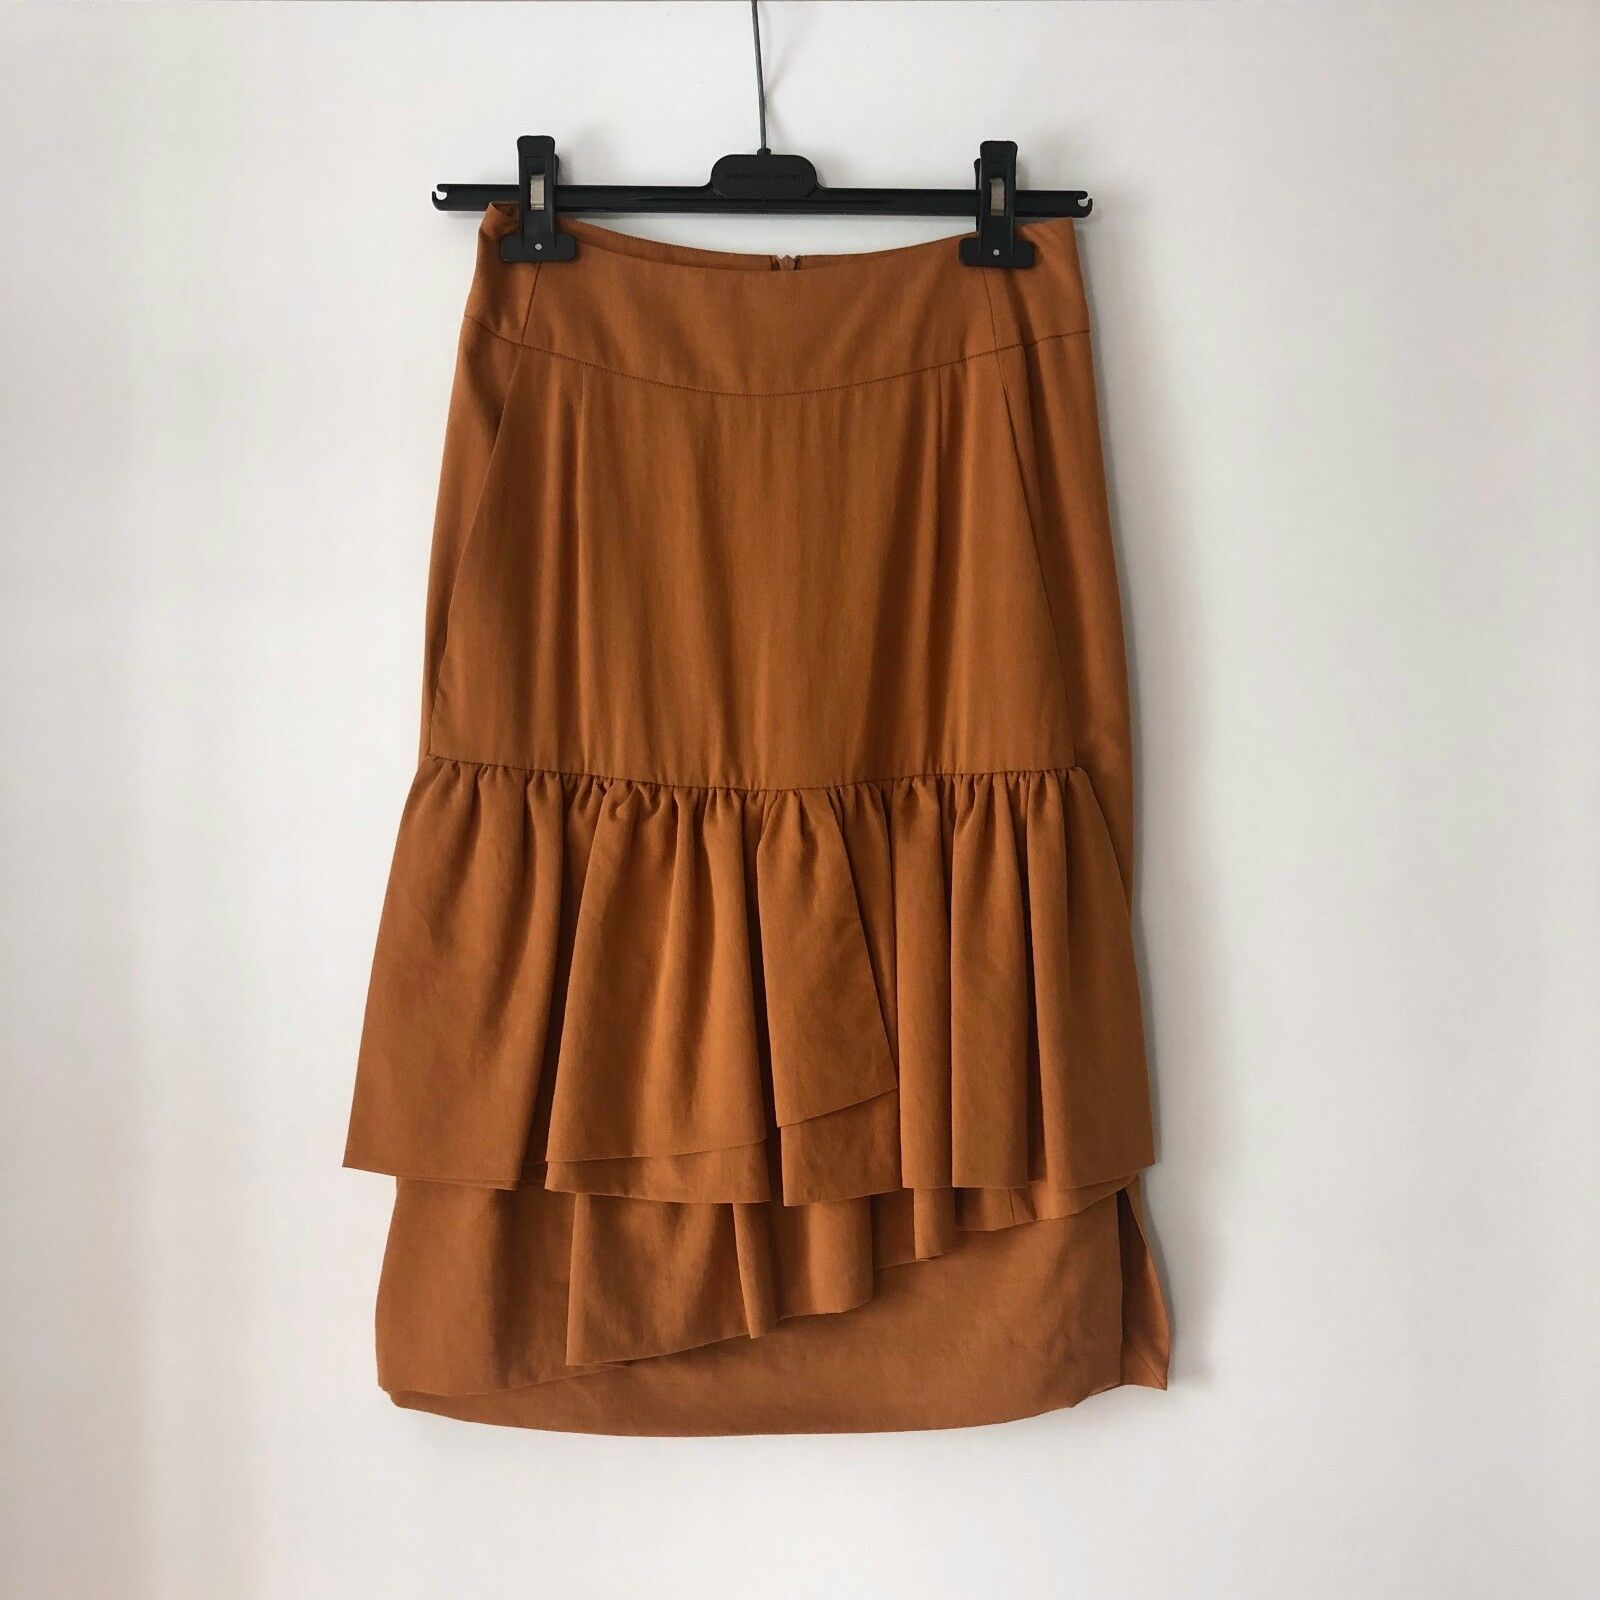 Dries Van Noten skirt FR34